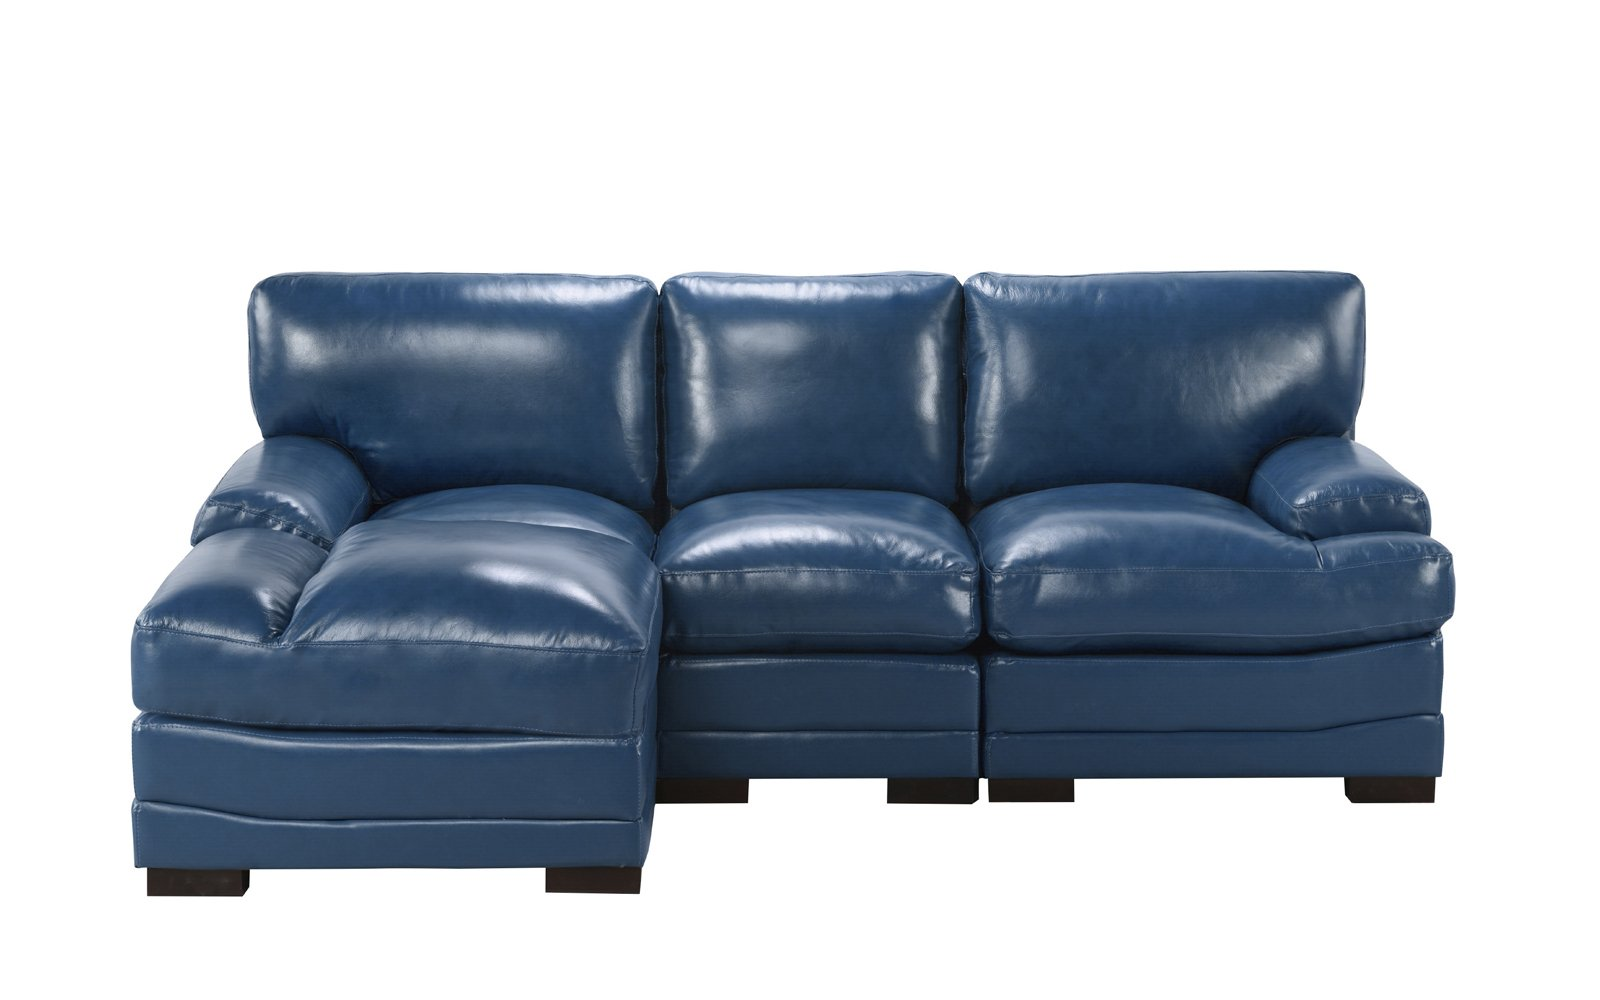 Details About Modern Left Facing Sectional Sofa Leather Match Fabric High Density Navy Blue